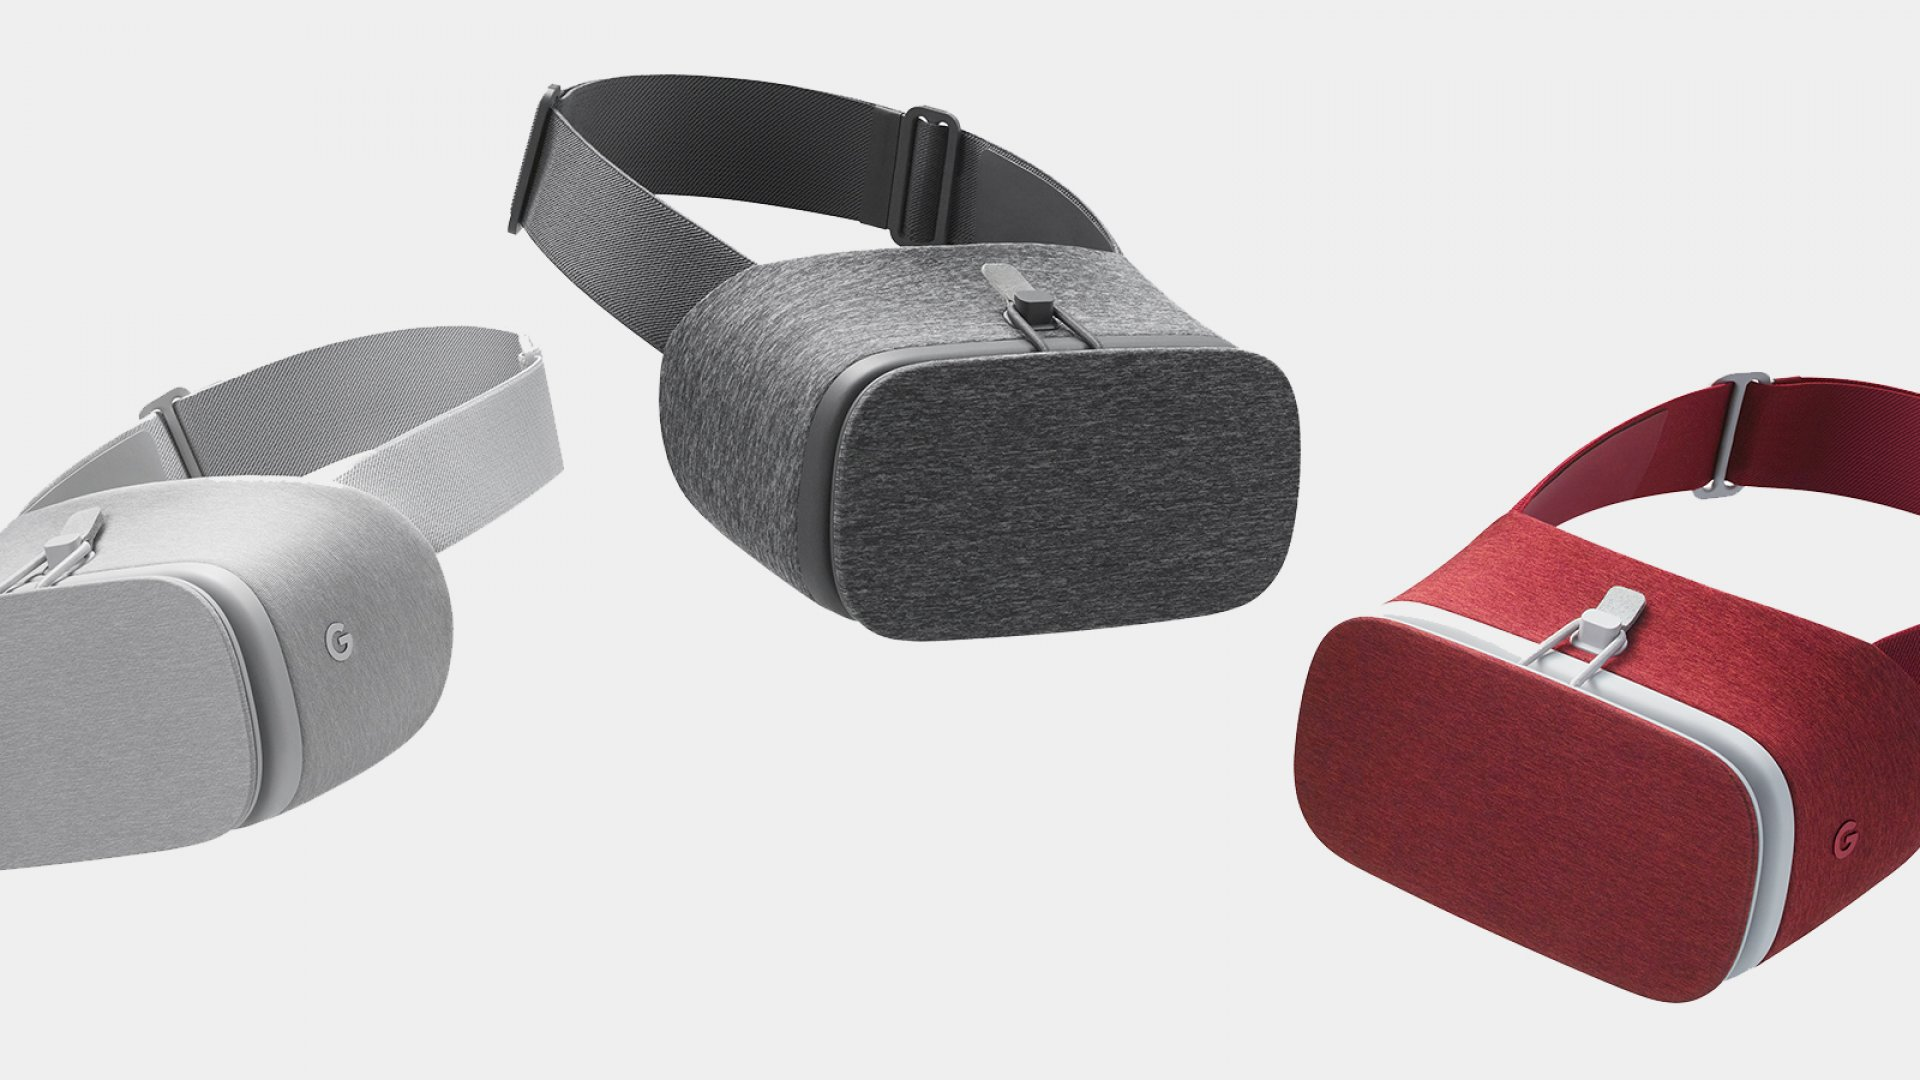 Google Unveils Daydream View, Its New Virtual Reality Headset